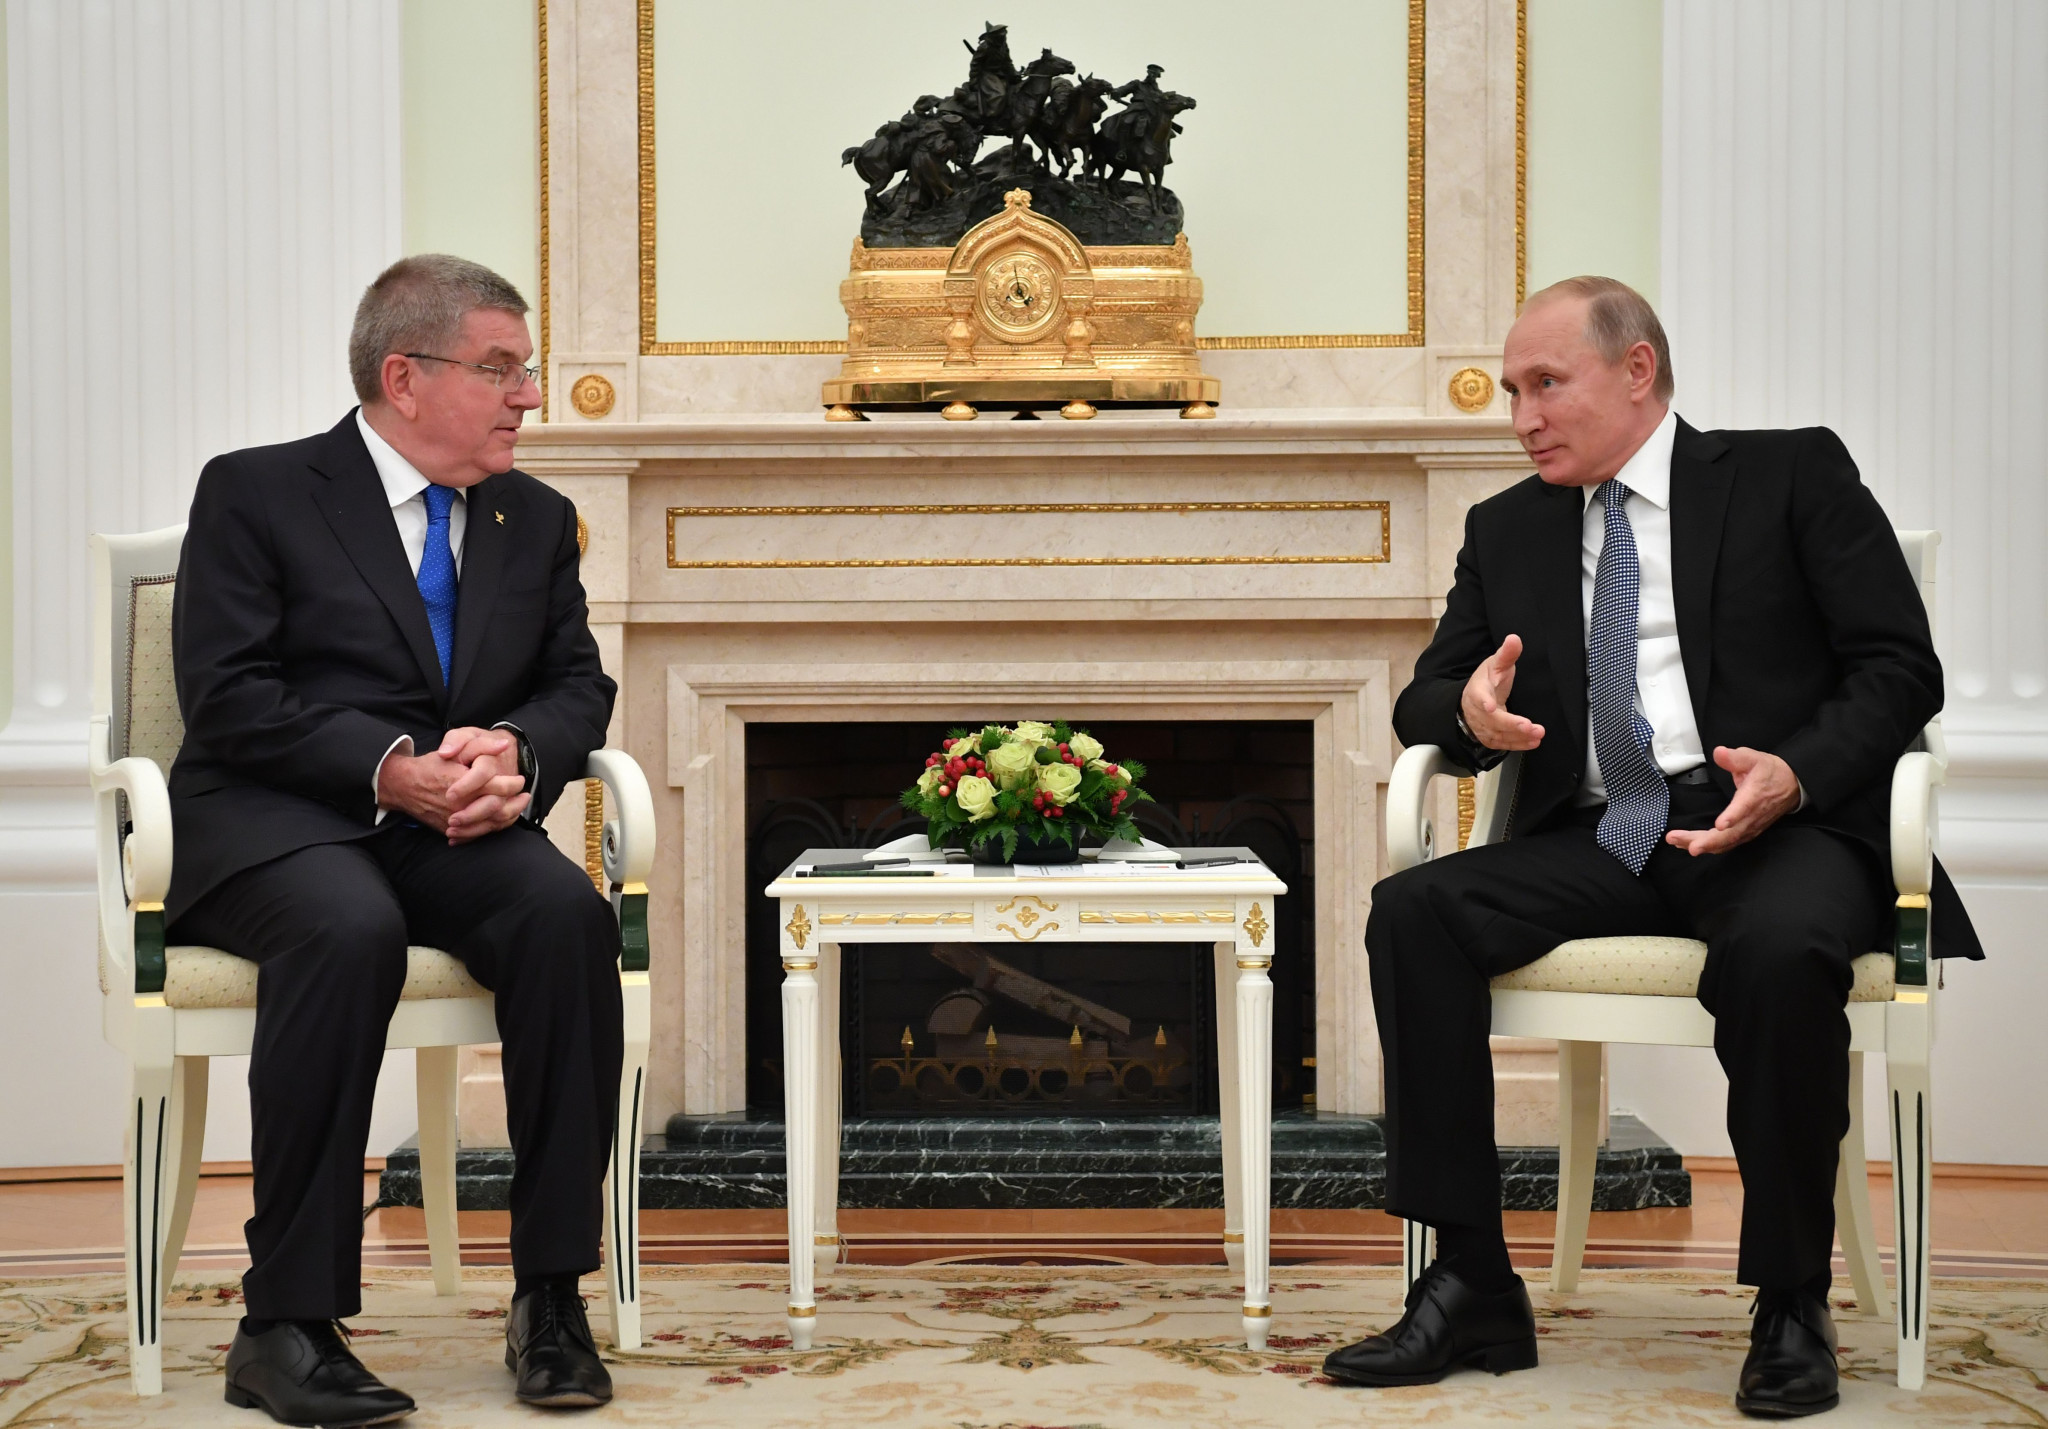 A meeting between Thomas Bach, left, and Vladimir Putin at the Kremlin has been hailed as an example of closer relations ©Getty Images